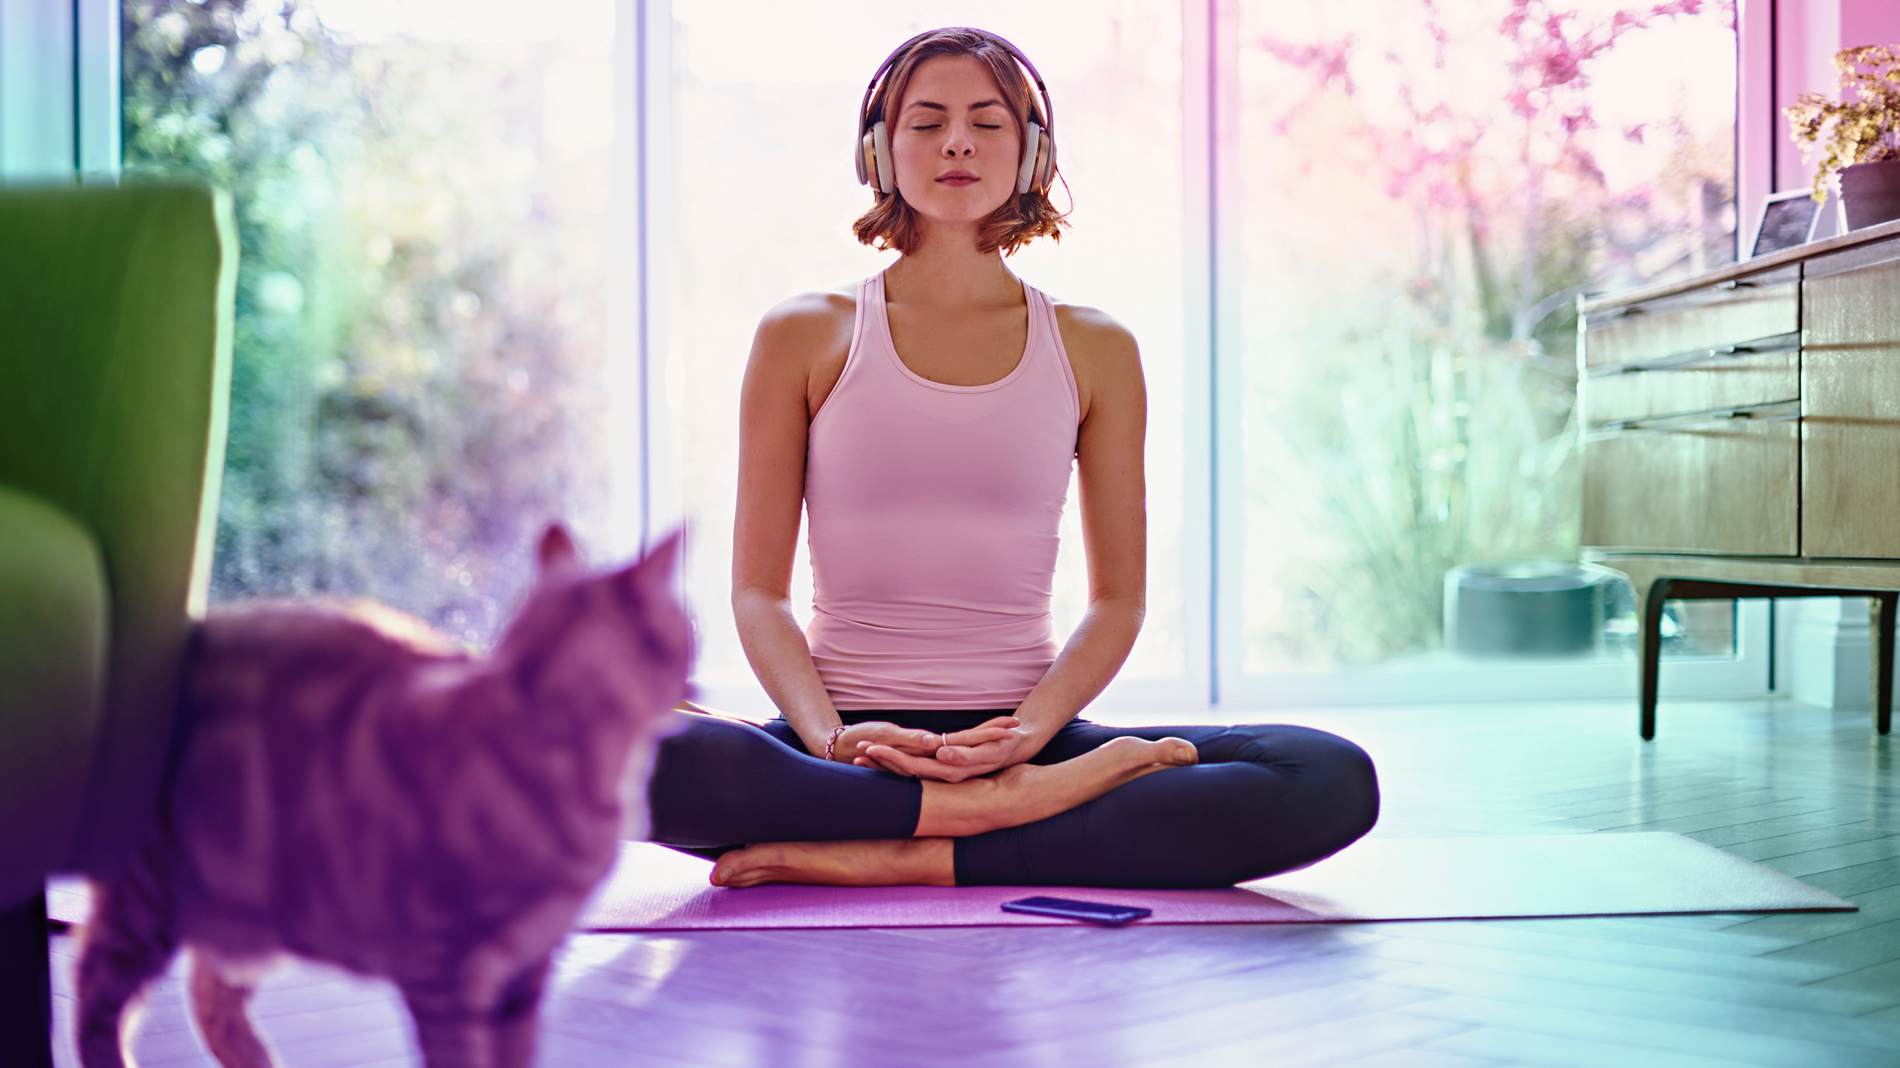 A woman sits on a yoga mat in a living room while wearing large headphones streaming meditation music through her Three Mobile Network on her cell phone that rests on the floor in front of her.